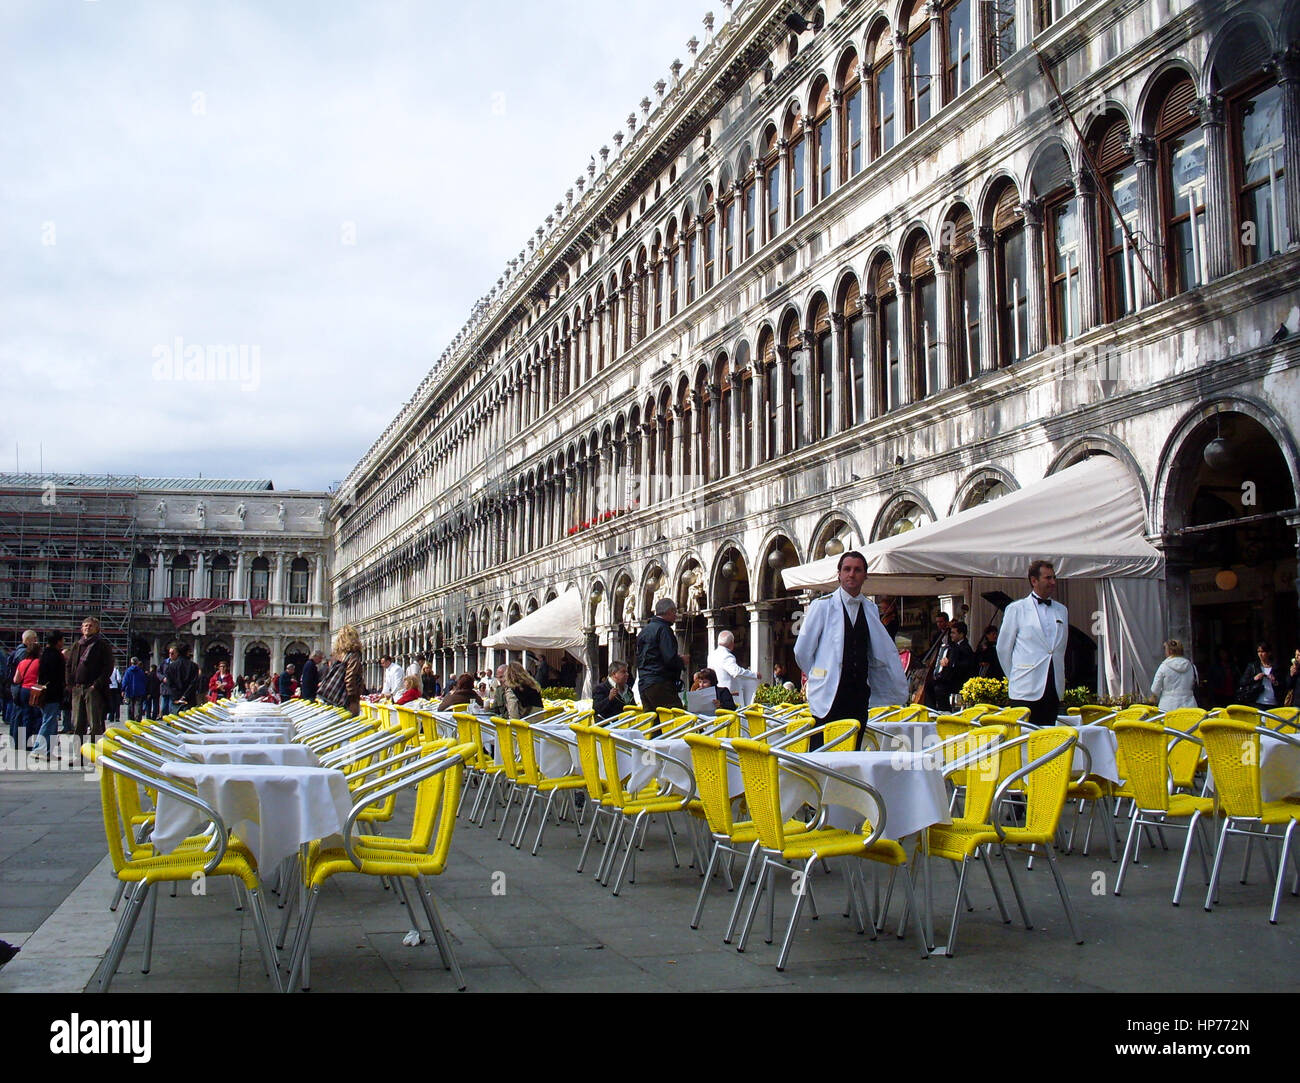 Piazza San Marco, Venice, Italy – October  04, 2008 - Stock Image